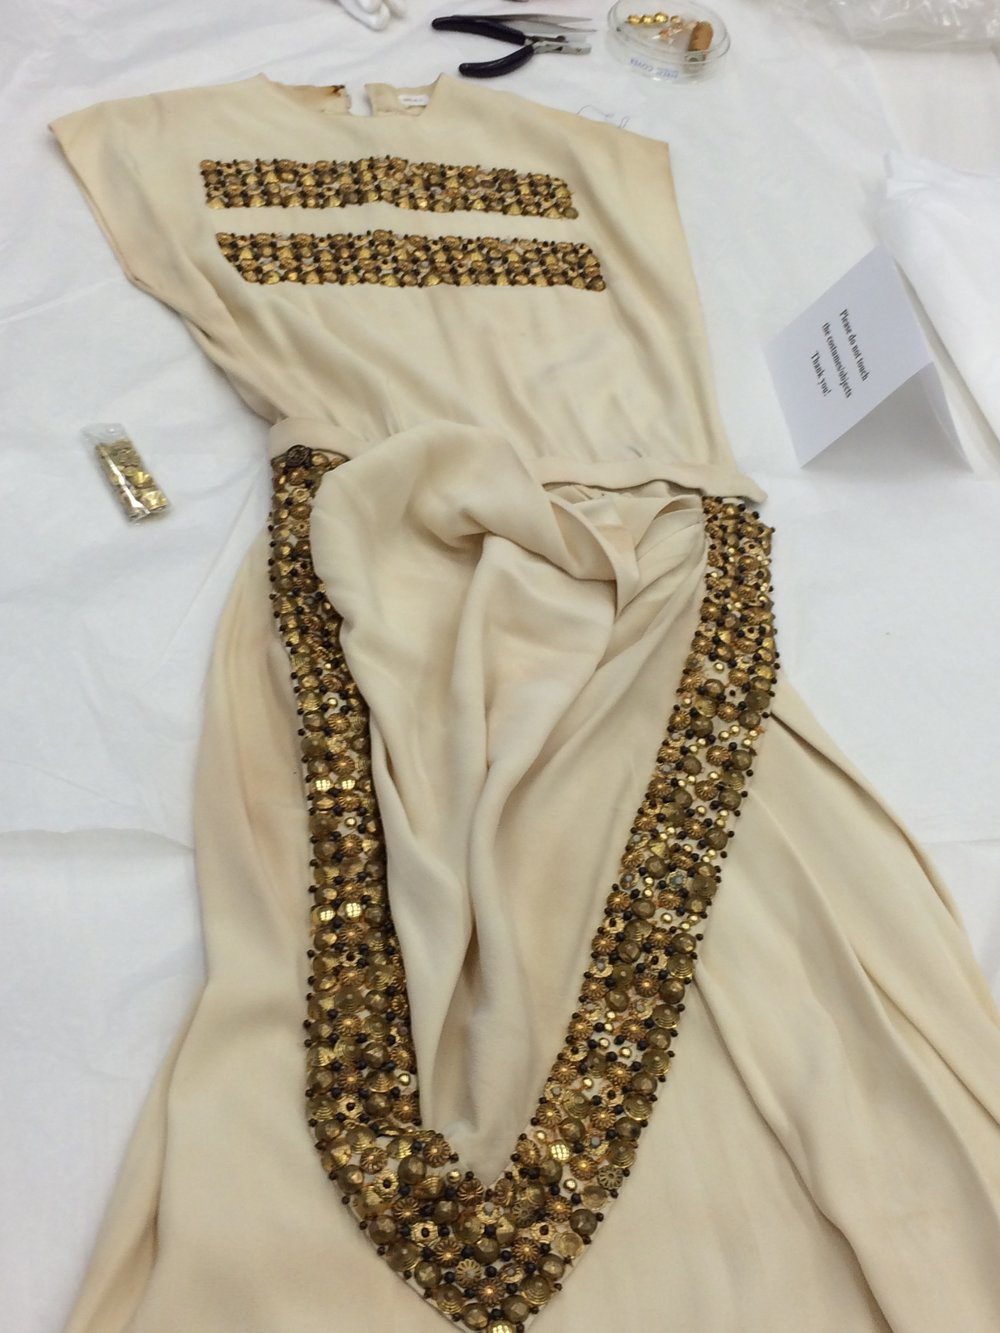 The dress had to be cleaned and repaired before it could be displayed.